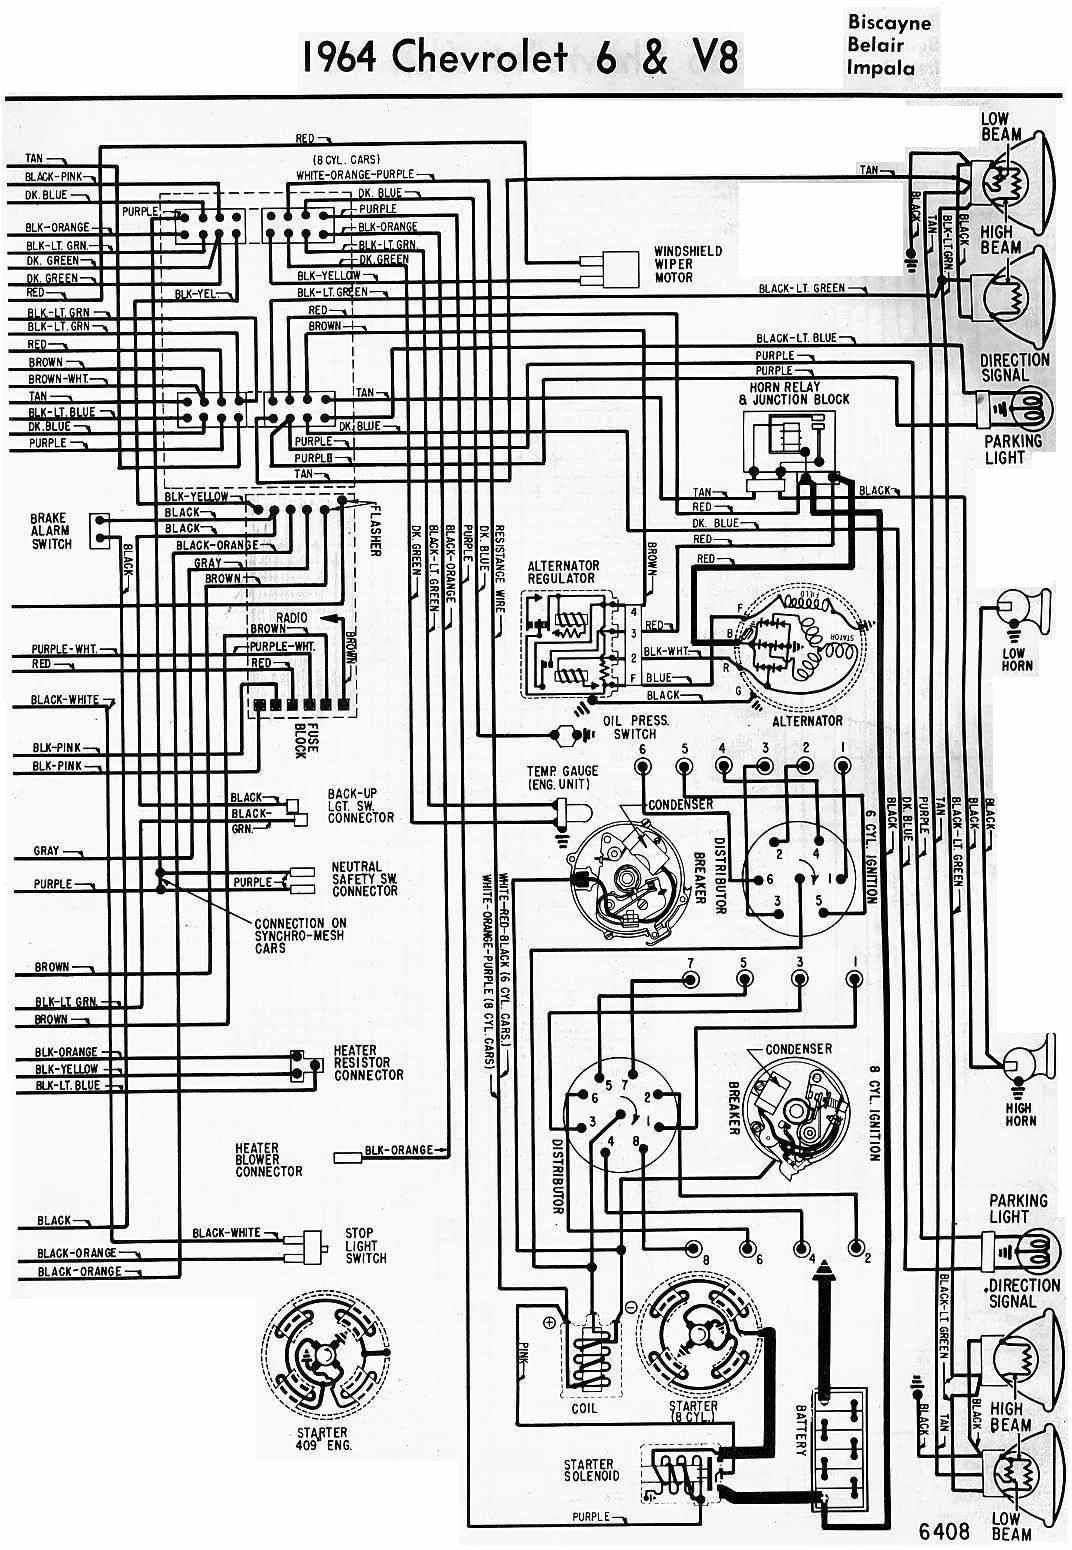 Schematic For 2011 Chevy Impala Detailed Wiring Diagrams 1983 Camaro Ignition Diagram Chevrolet Will Be A Thing U2022 2016